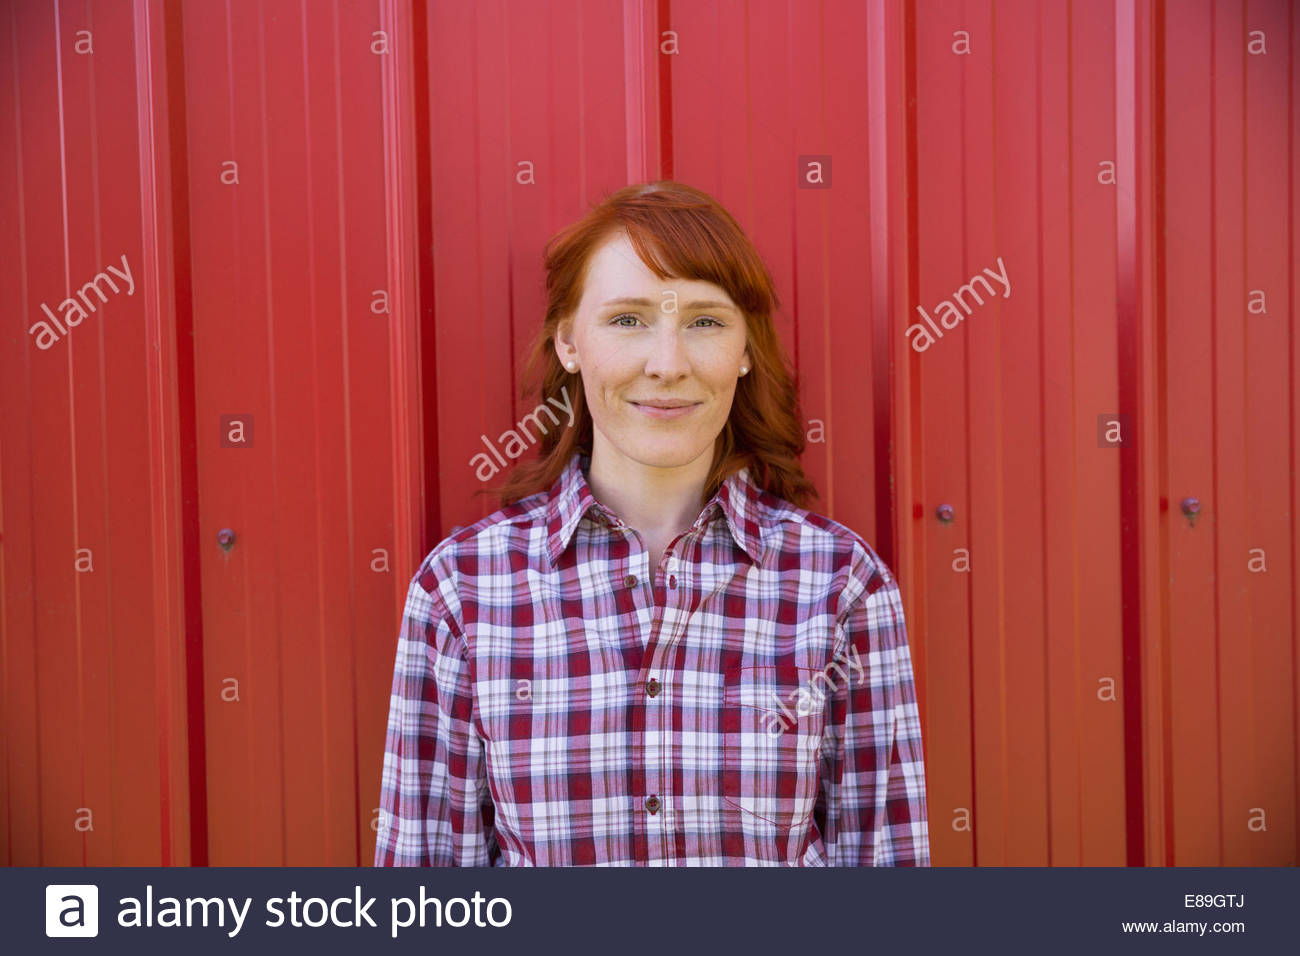 Portrait of smiling woman against red wall Photo Stock